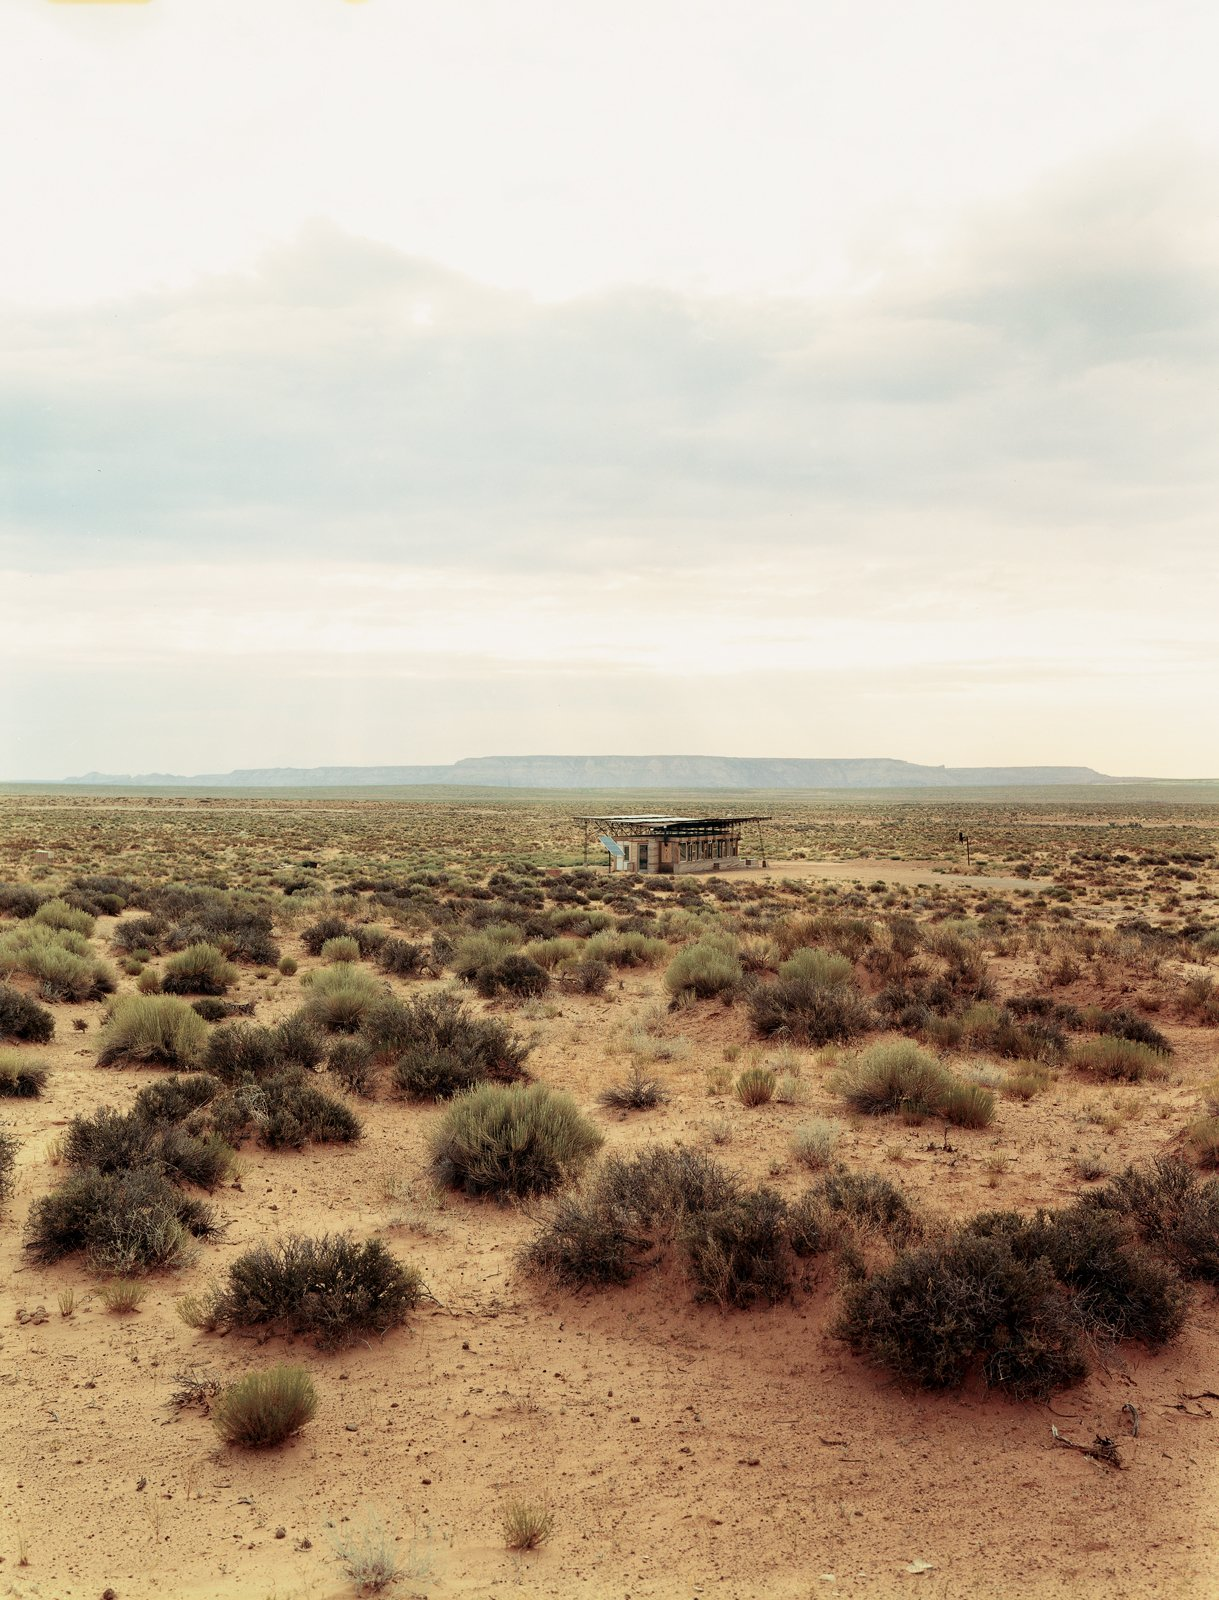 Architect Hank Louis worked with Navajo tribe elders to secure a 66-year lease on a half-acre lot in the middle of Bluf, Utah, for Rosie Joe and her children. Tagged: Outdoor and Desert.  Cabins & Hideouts by Stephen Blake from No Grid in Sight